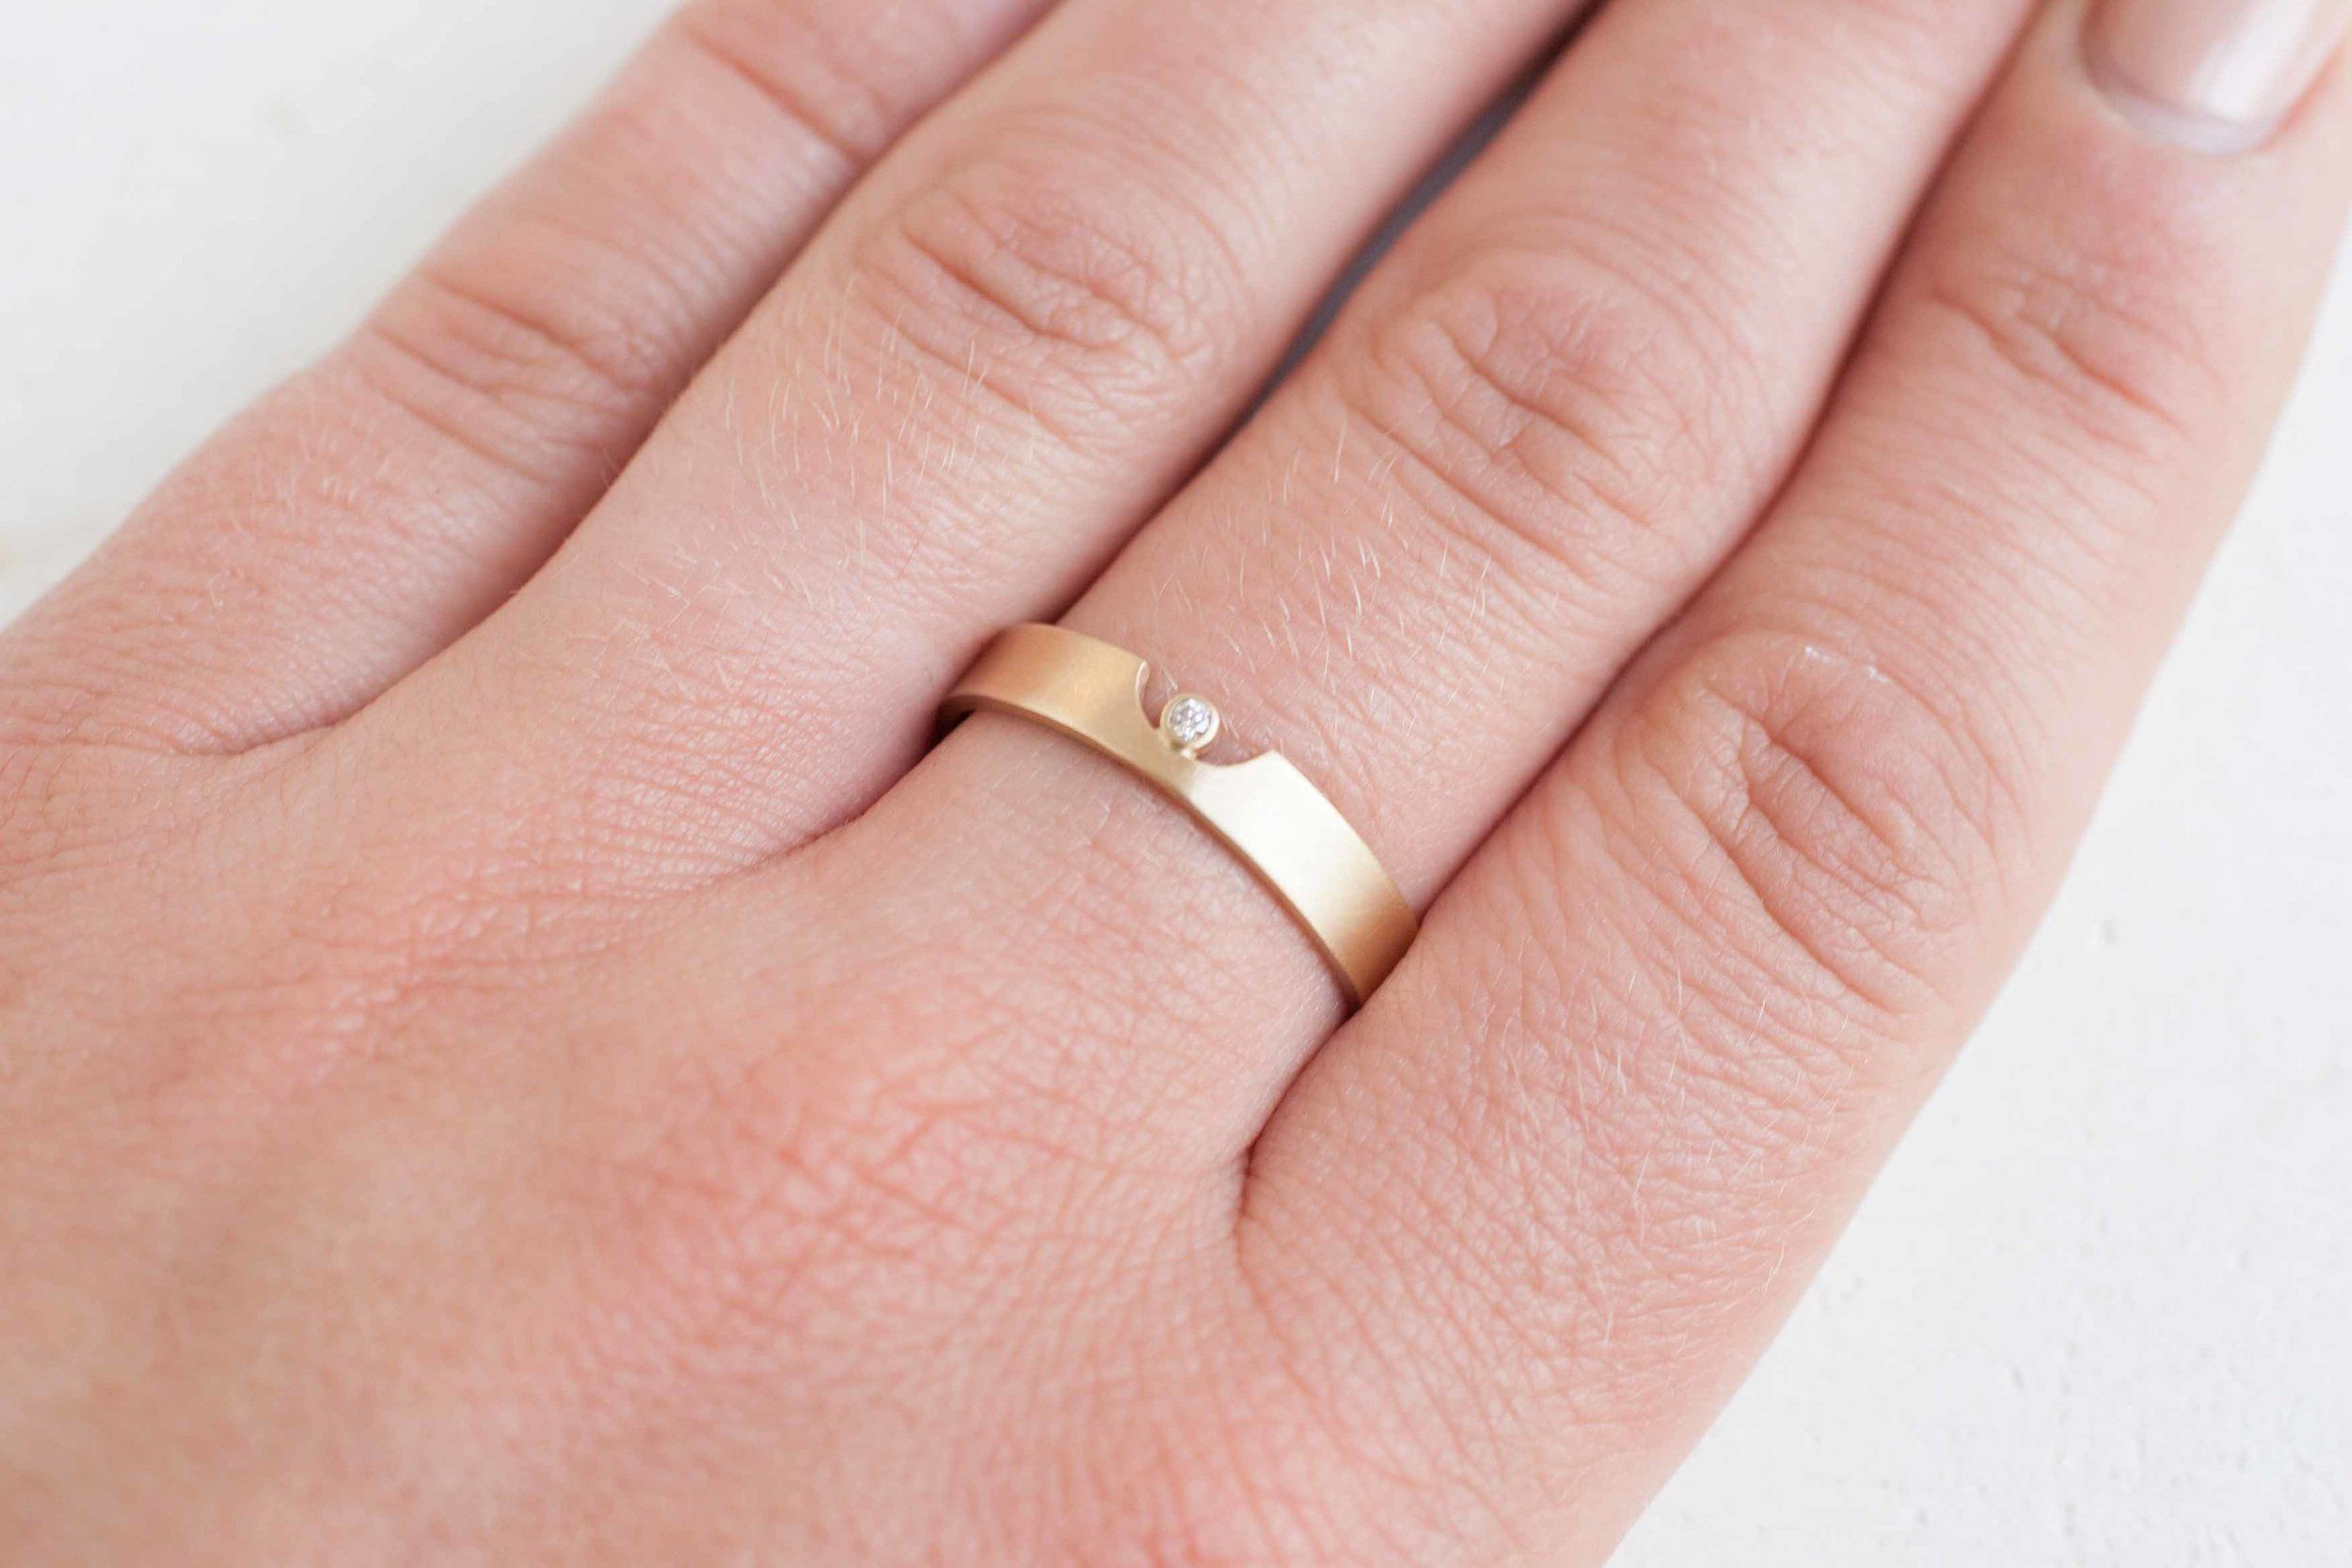 4 x 1 Semicircle Cut Out Ring + Diamond Accent | 14k Recycled Gold ...